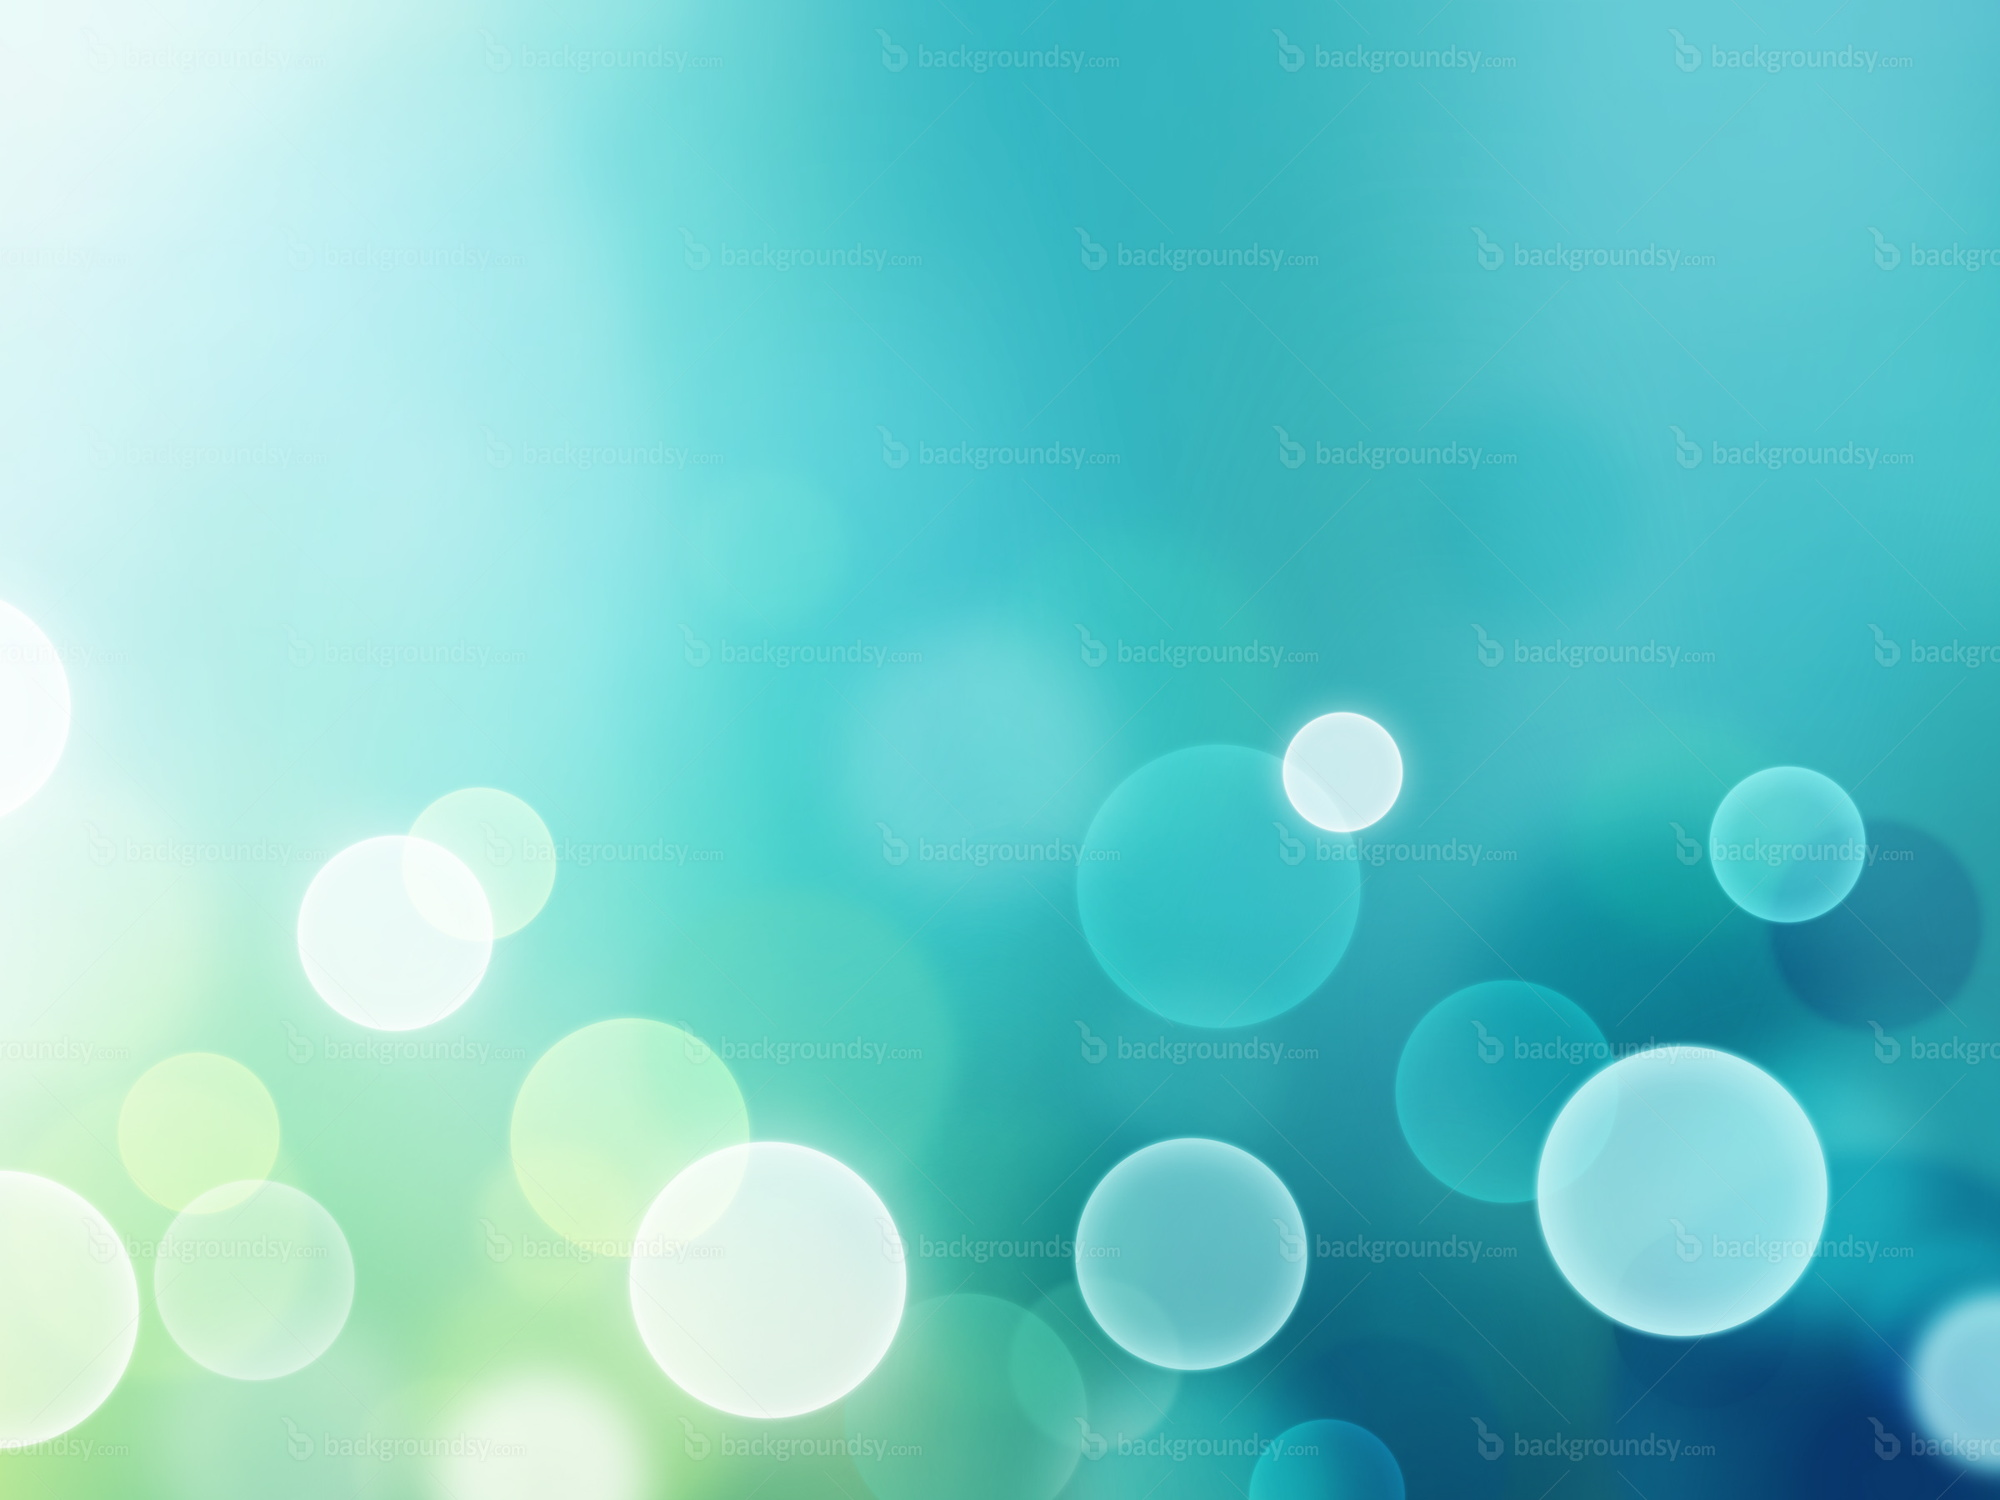 Design A Home Blurry Particles Background Backgroundsy Com